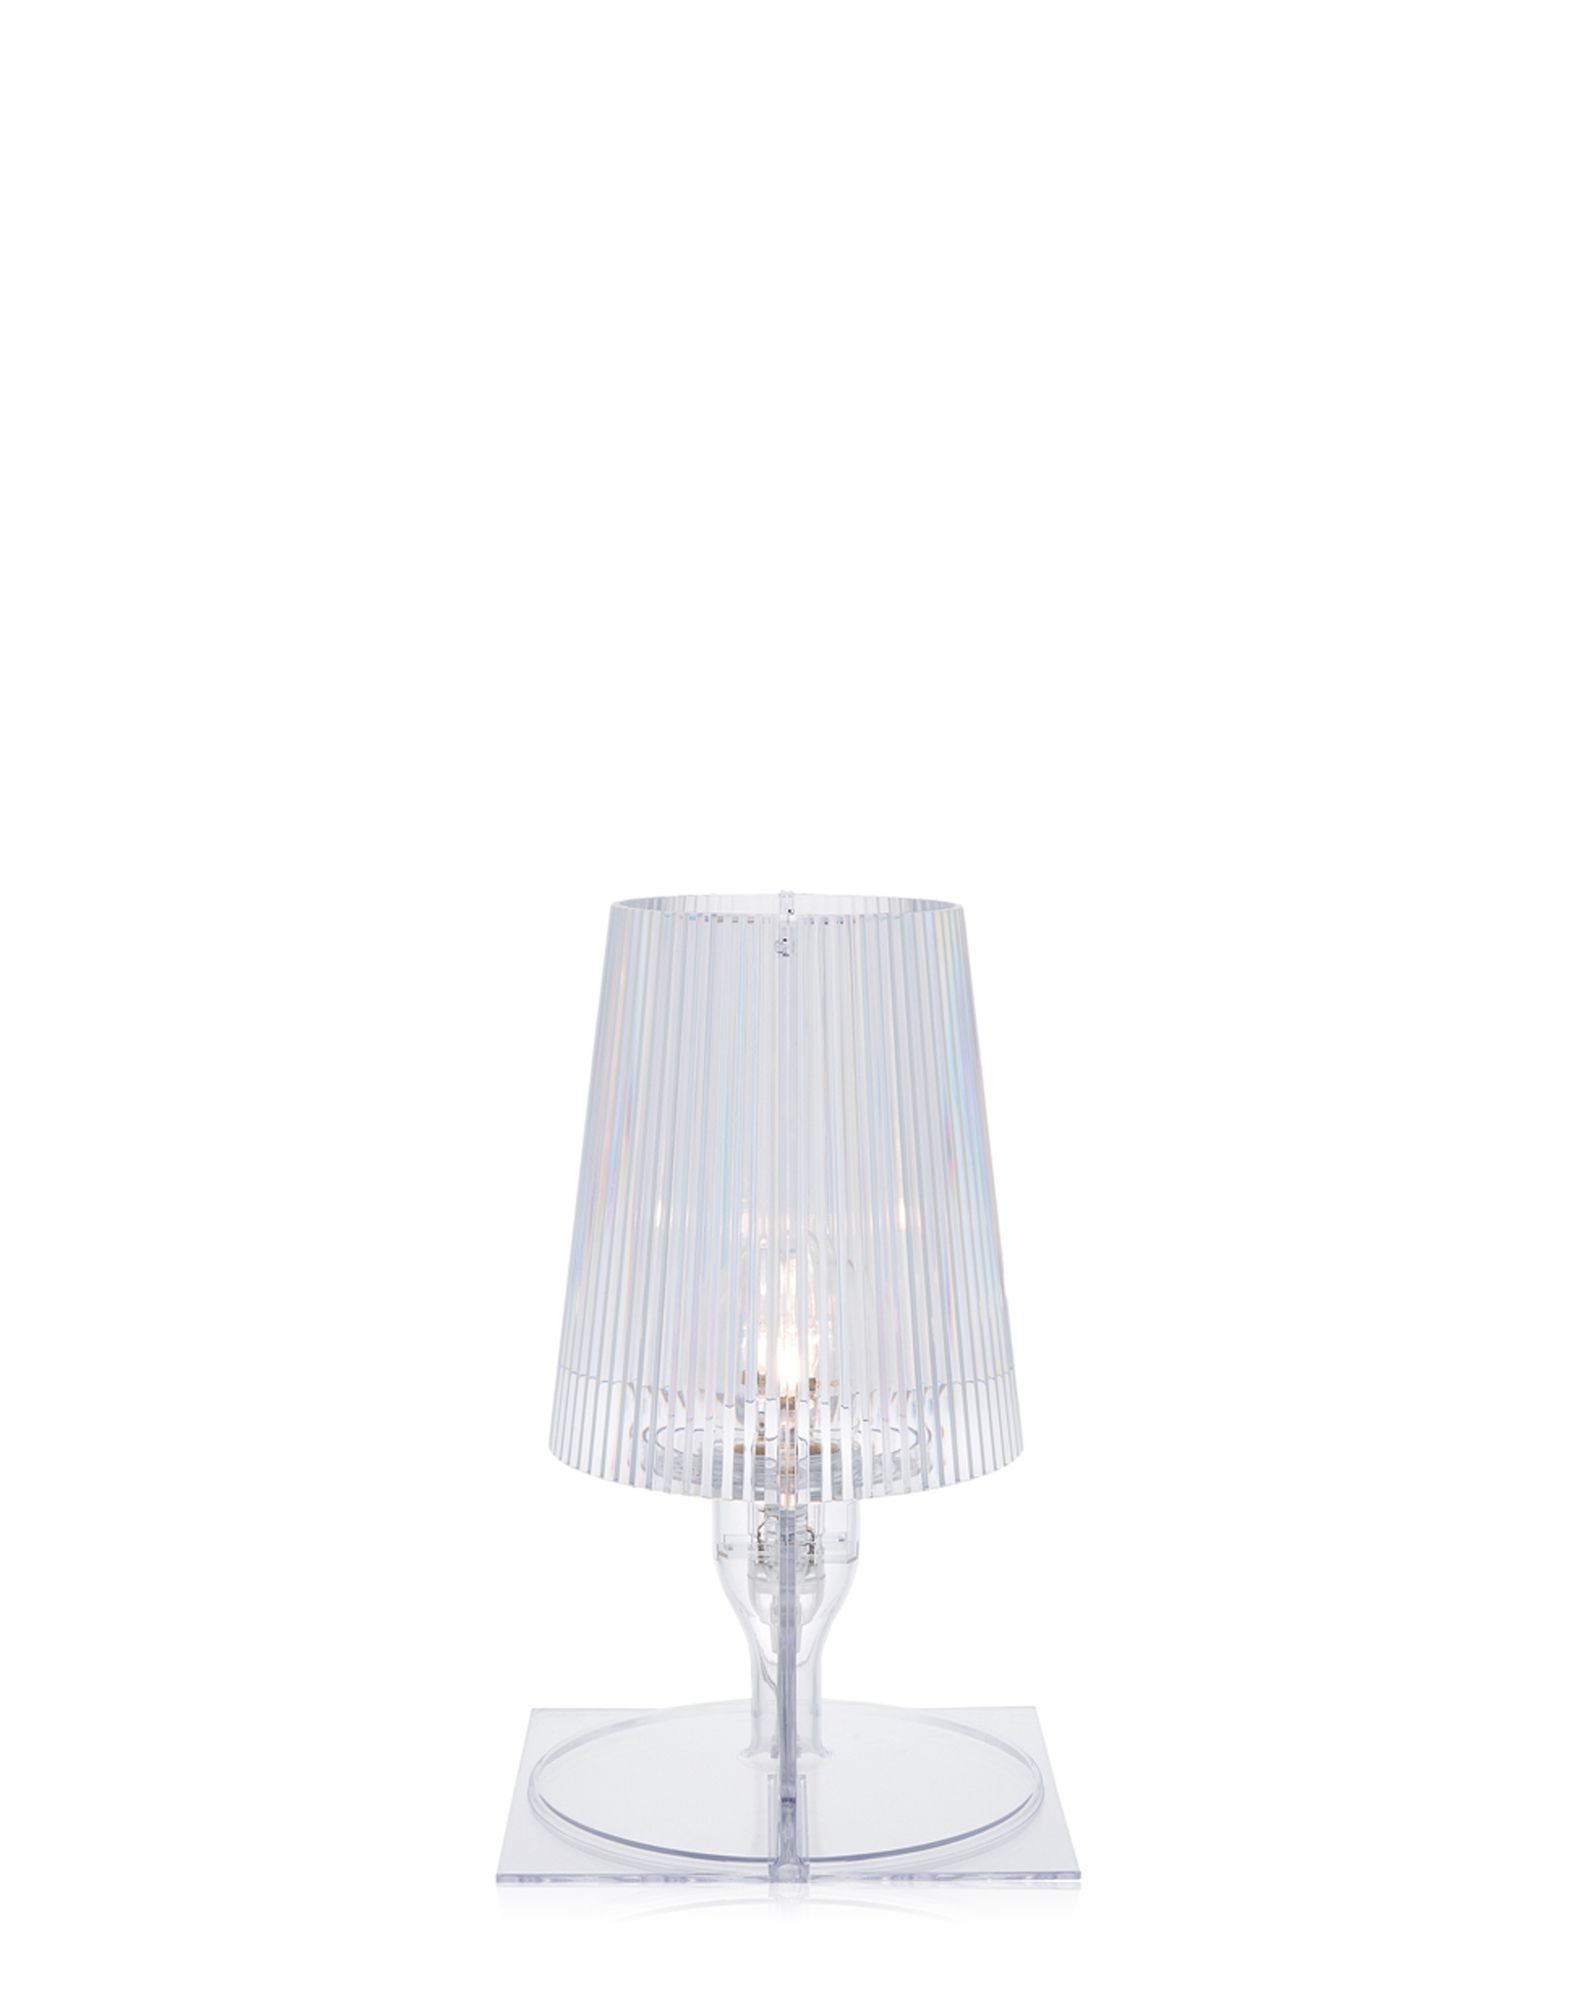 Kartell Take Table Lamp. Buy Kartell Bourgie Table Lamp Online At ...